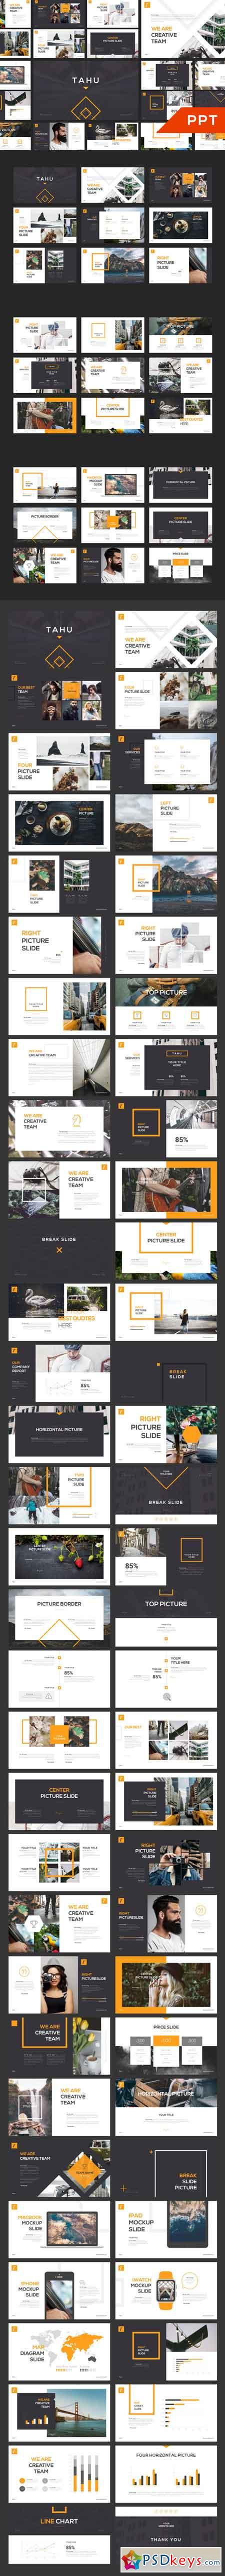 tahu powerpoint template 720863 free download photoshop vector